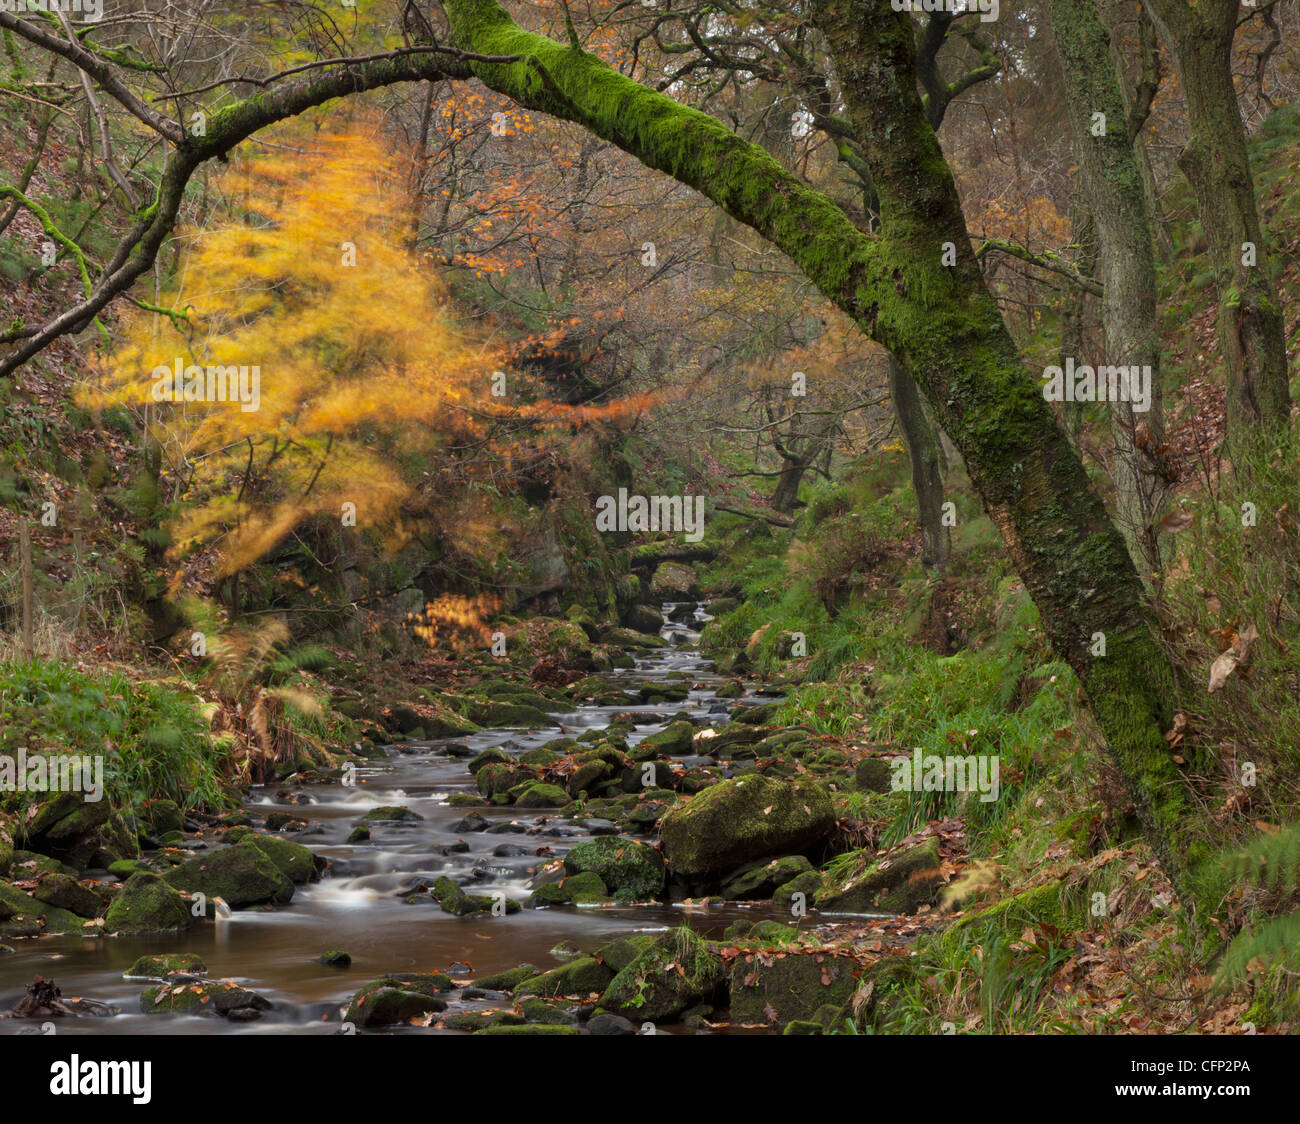 windy Golden Tree, Gradbach, the Roaches,Peak District National Park, England, UK - Stock Image